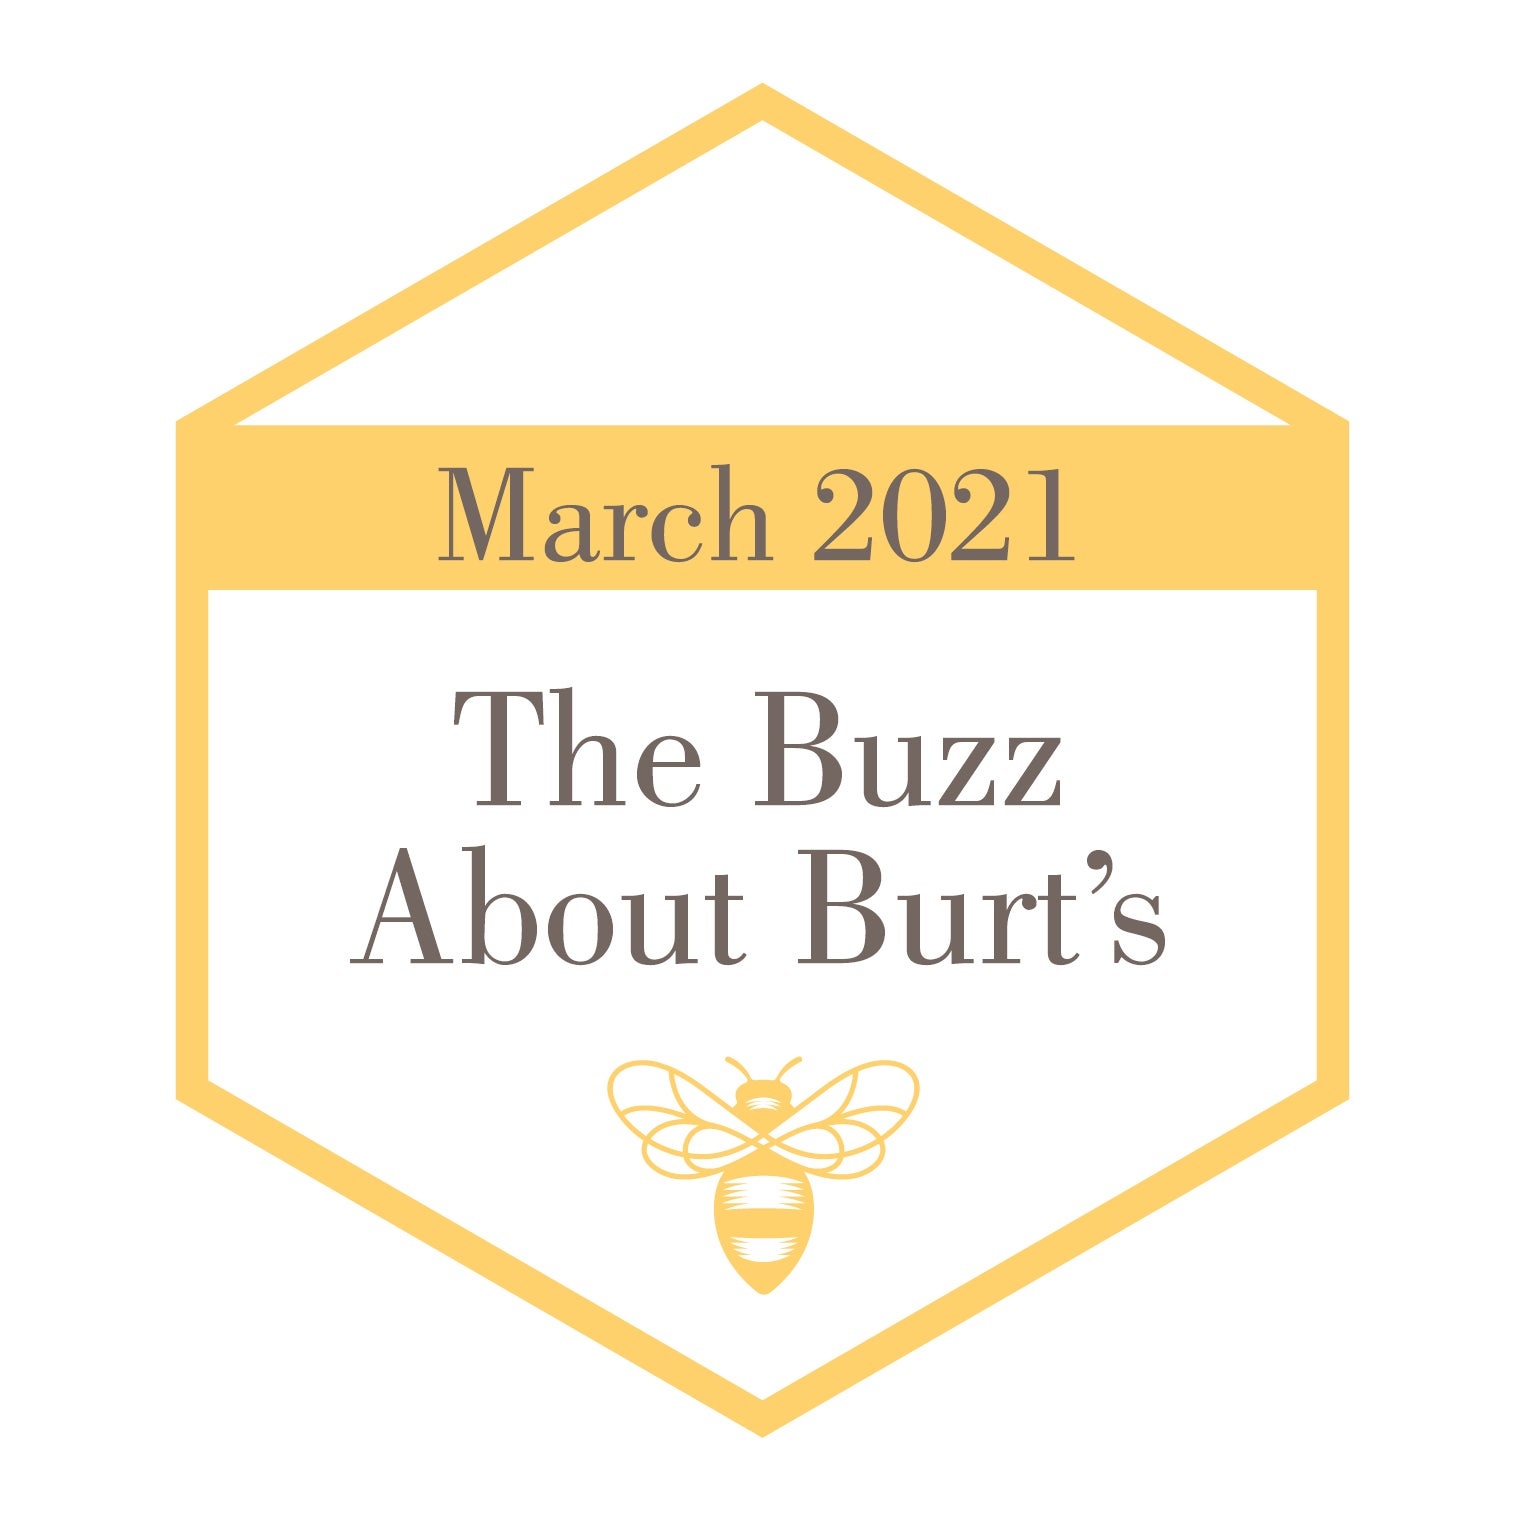 The Buzz About Burt's - March